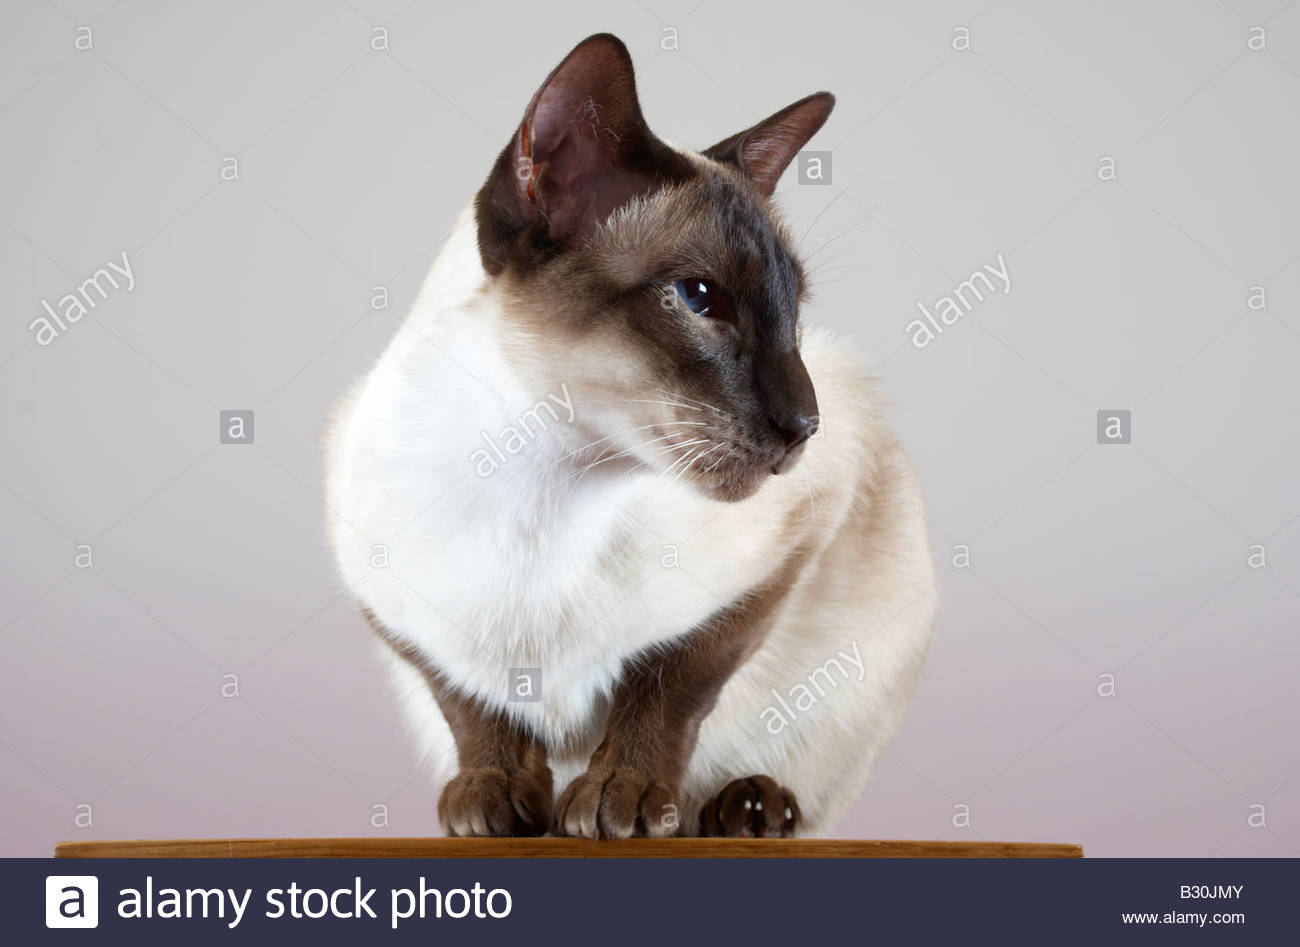 siamese cat sat on a pedestal against a slight grad background - Stock Image